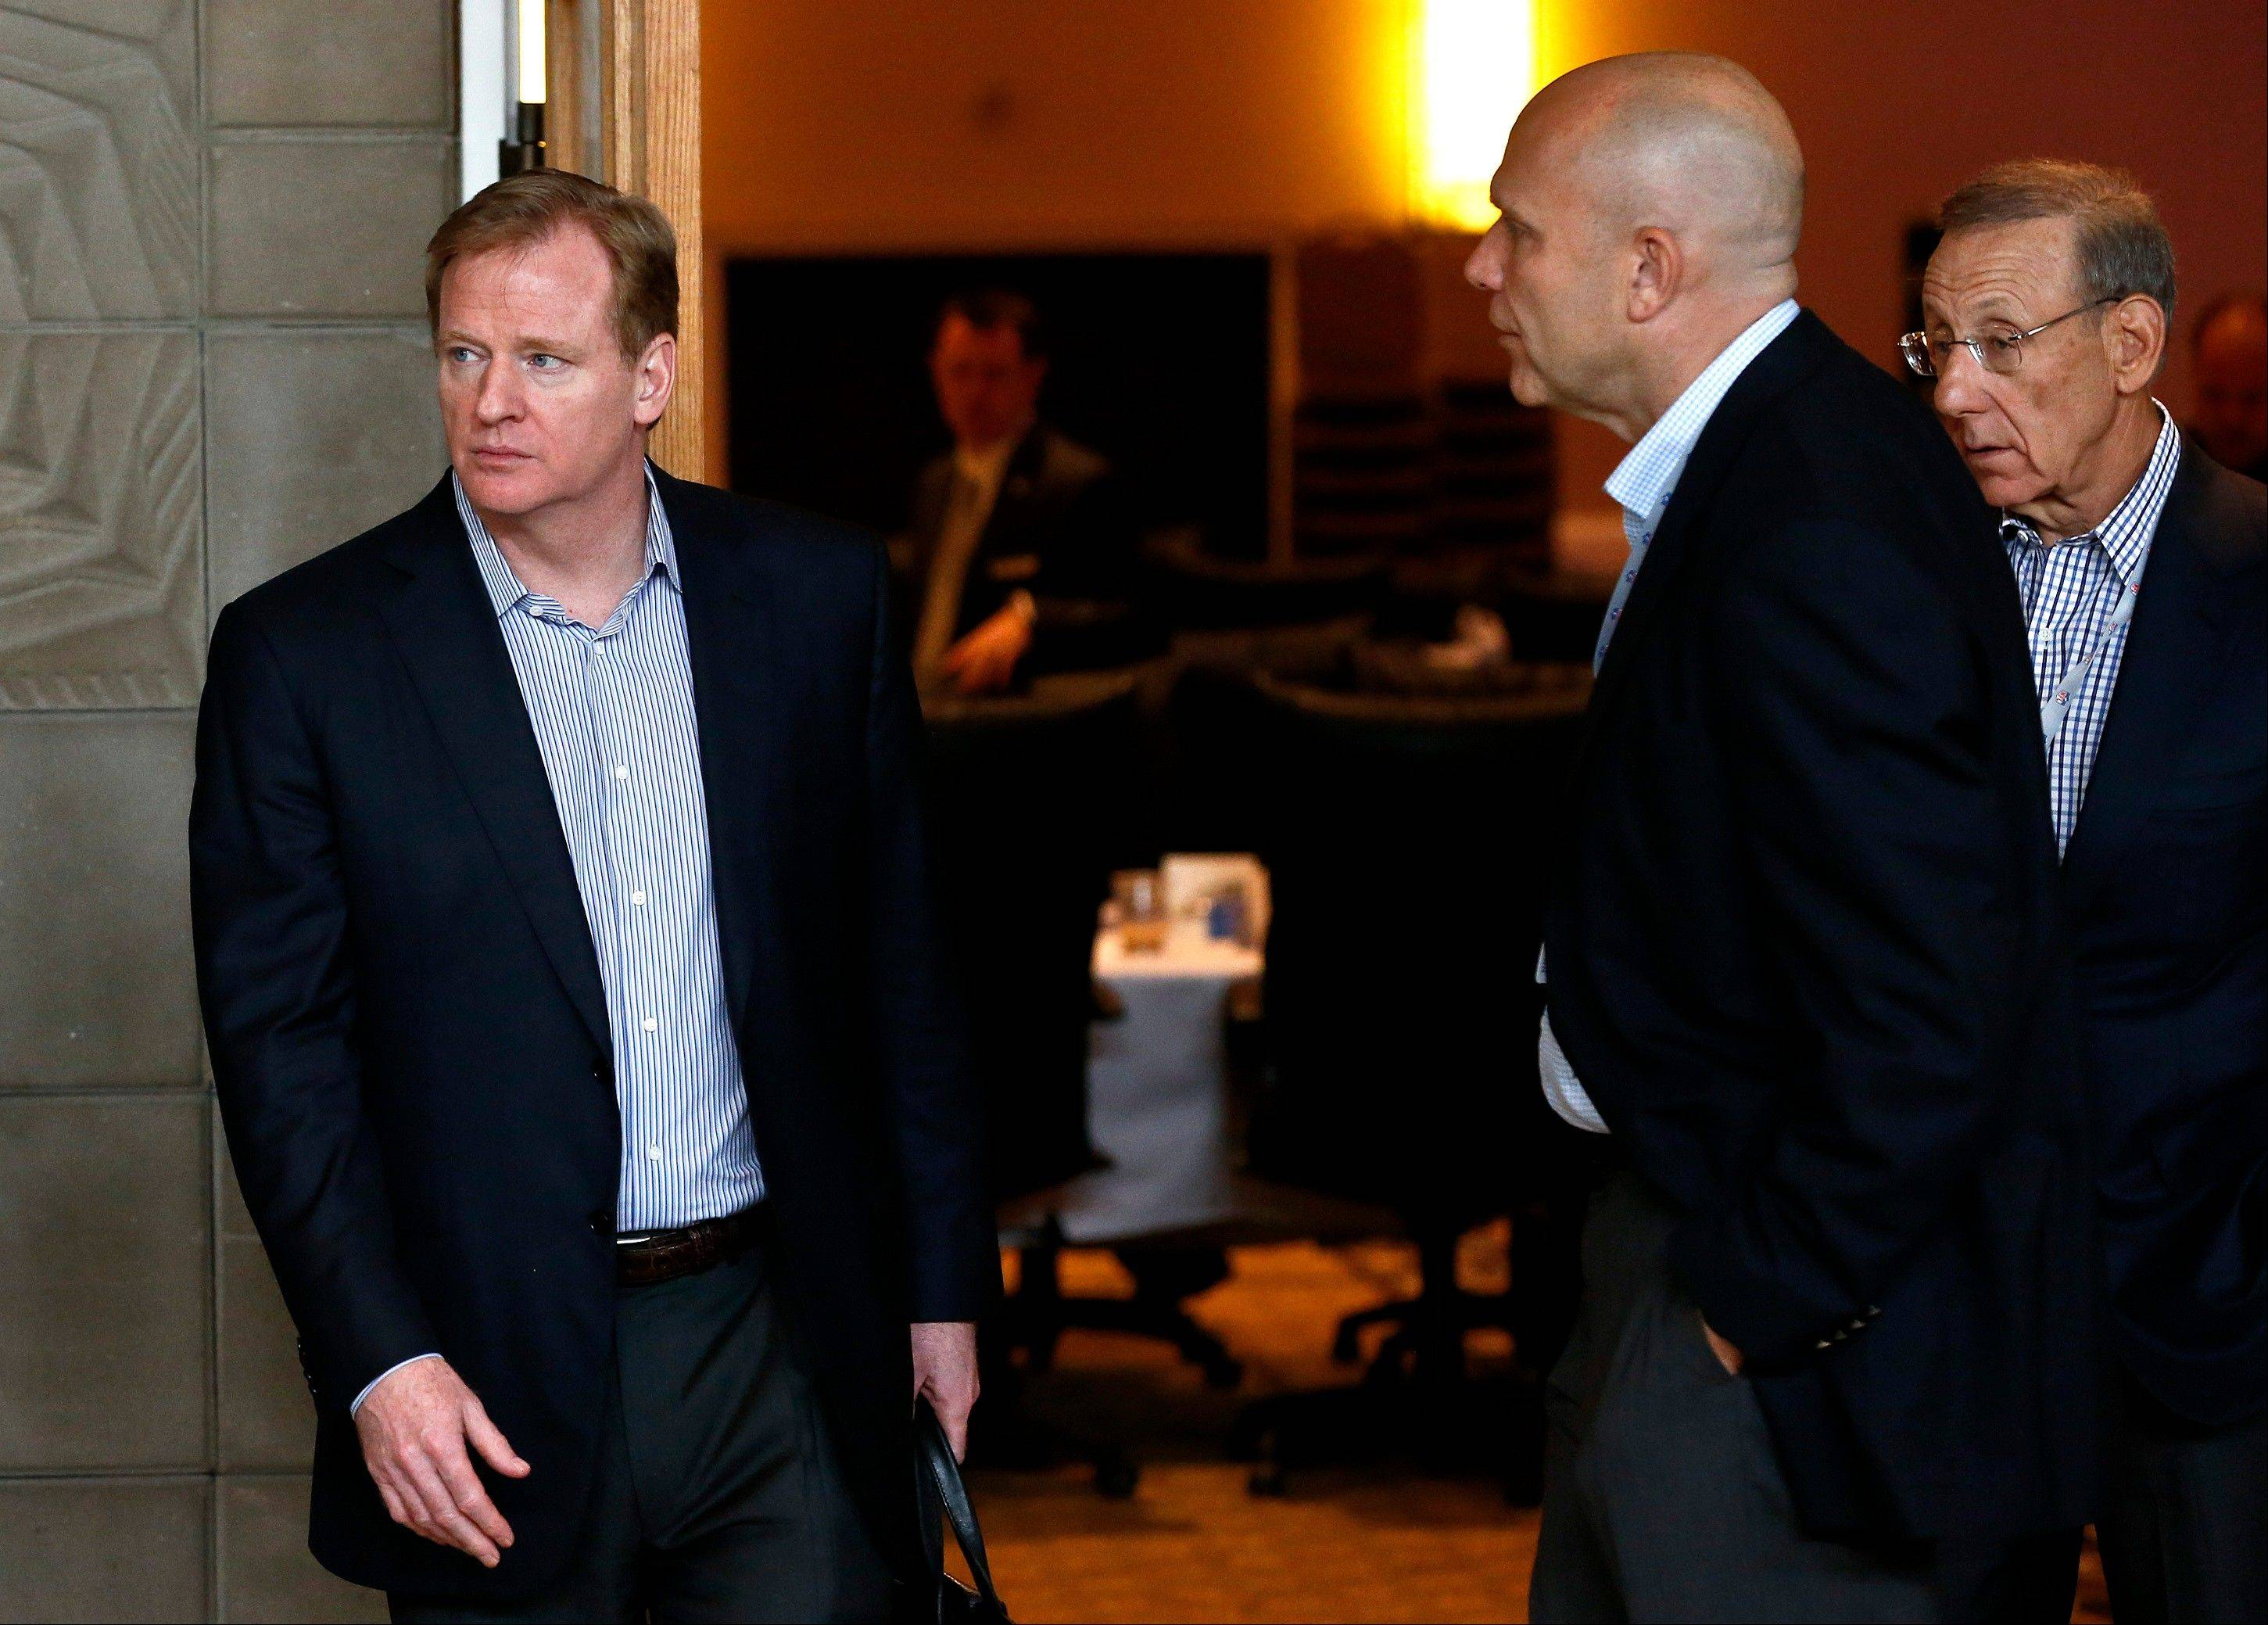 NFL Commissioner Roger Gooderll, left, walks with Miami Dolphins owner Stephen Ross, far right, and Dolphins CEO Mike Dee during the annual NFL footbal meetings at the Arizona Biltmore, Tuesday, March 19, 2013, in Phoenix.